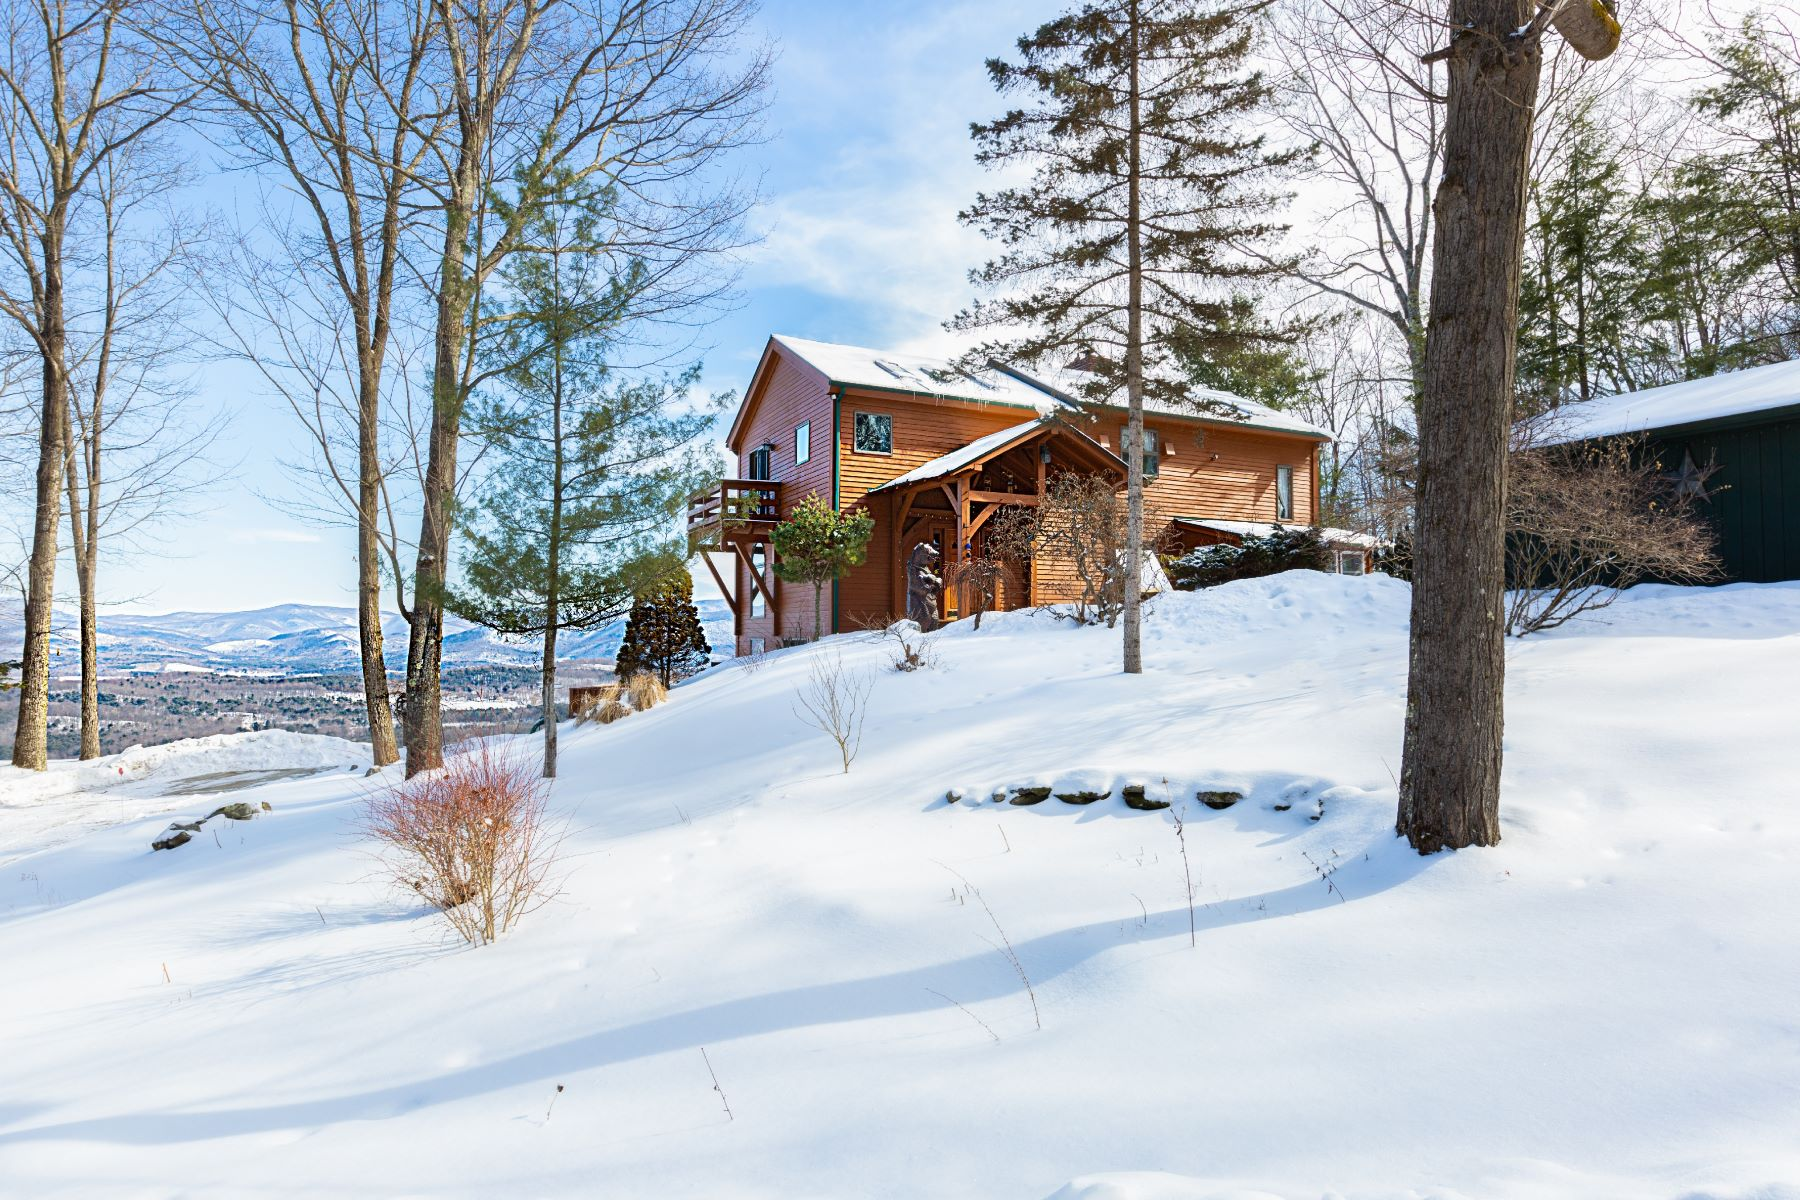 Single Family Home for Sale at Summit View Retreat 61 Fire Tower Rd Cambridge, New York 12816 United States